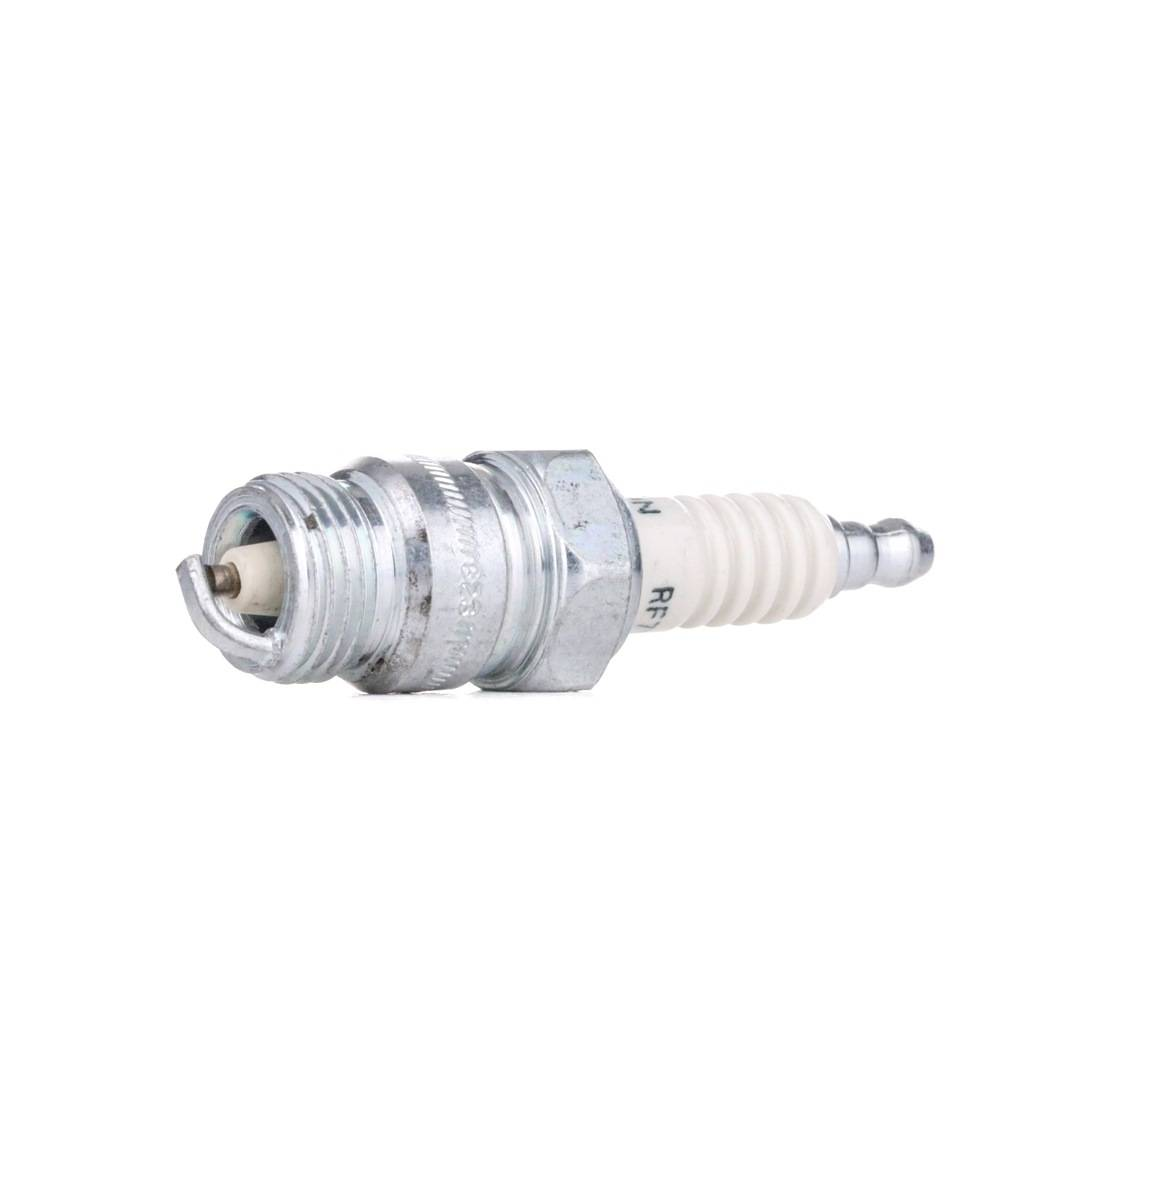 CHAMPION Bougies d'Allumage FORD,FORD OTOSAN OE054/T10 1120818,12405AD,12405JE Bougie Moteur 1507572,5099731,5099732,5099733,5099735,5099846,5099848